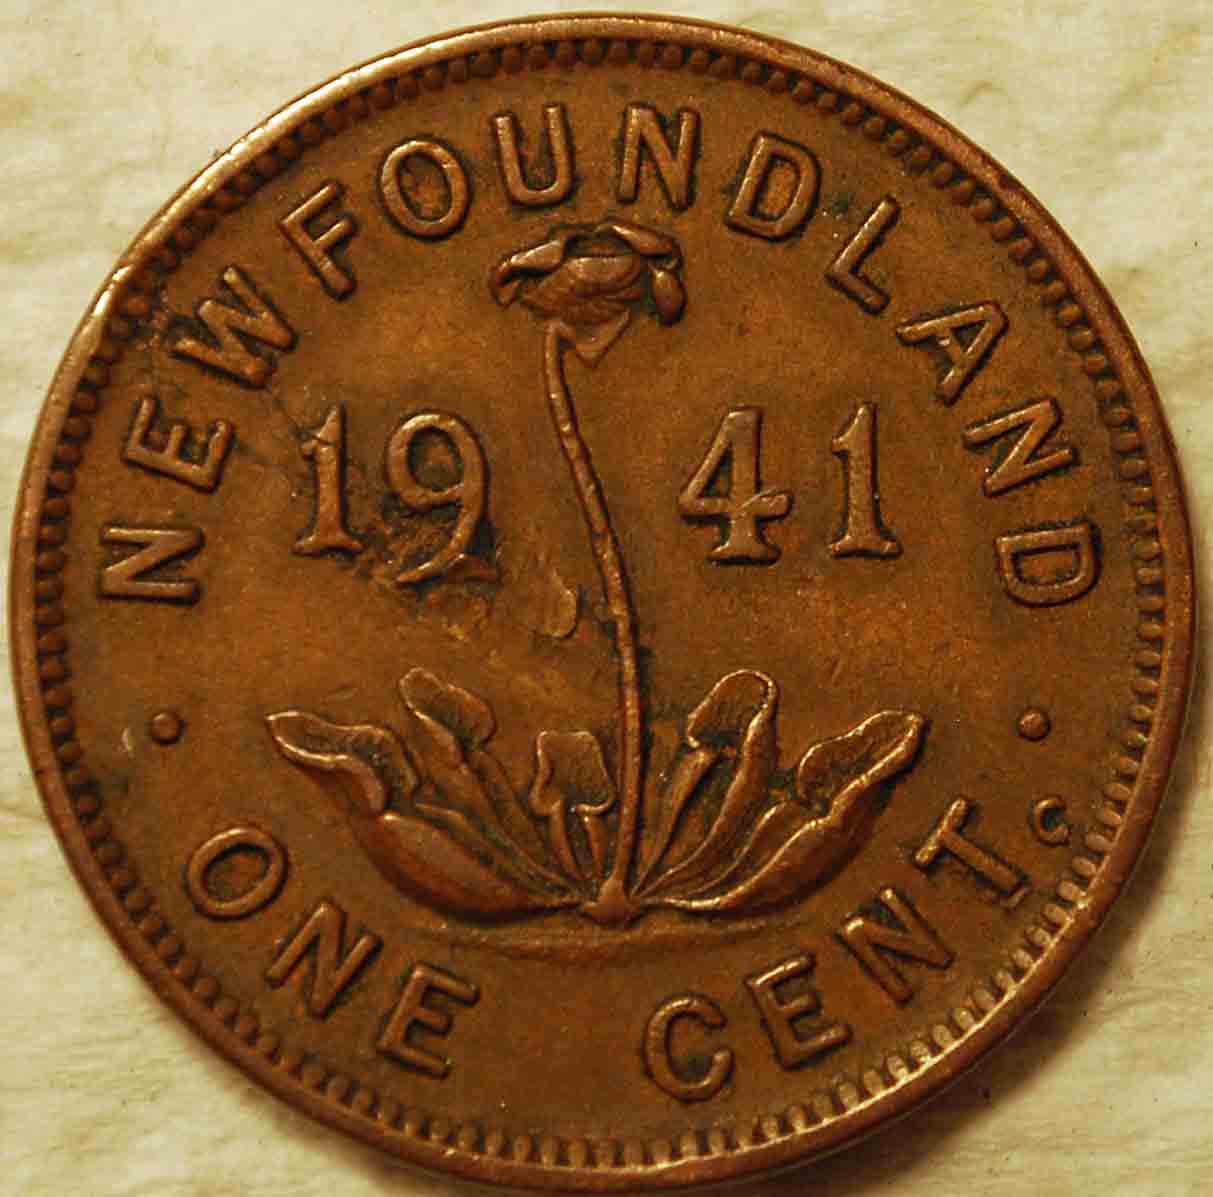 And Another 1941 Newfoundland 1 Cent Coin Community Forum